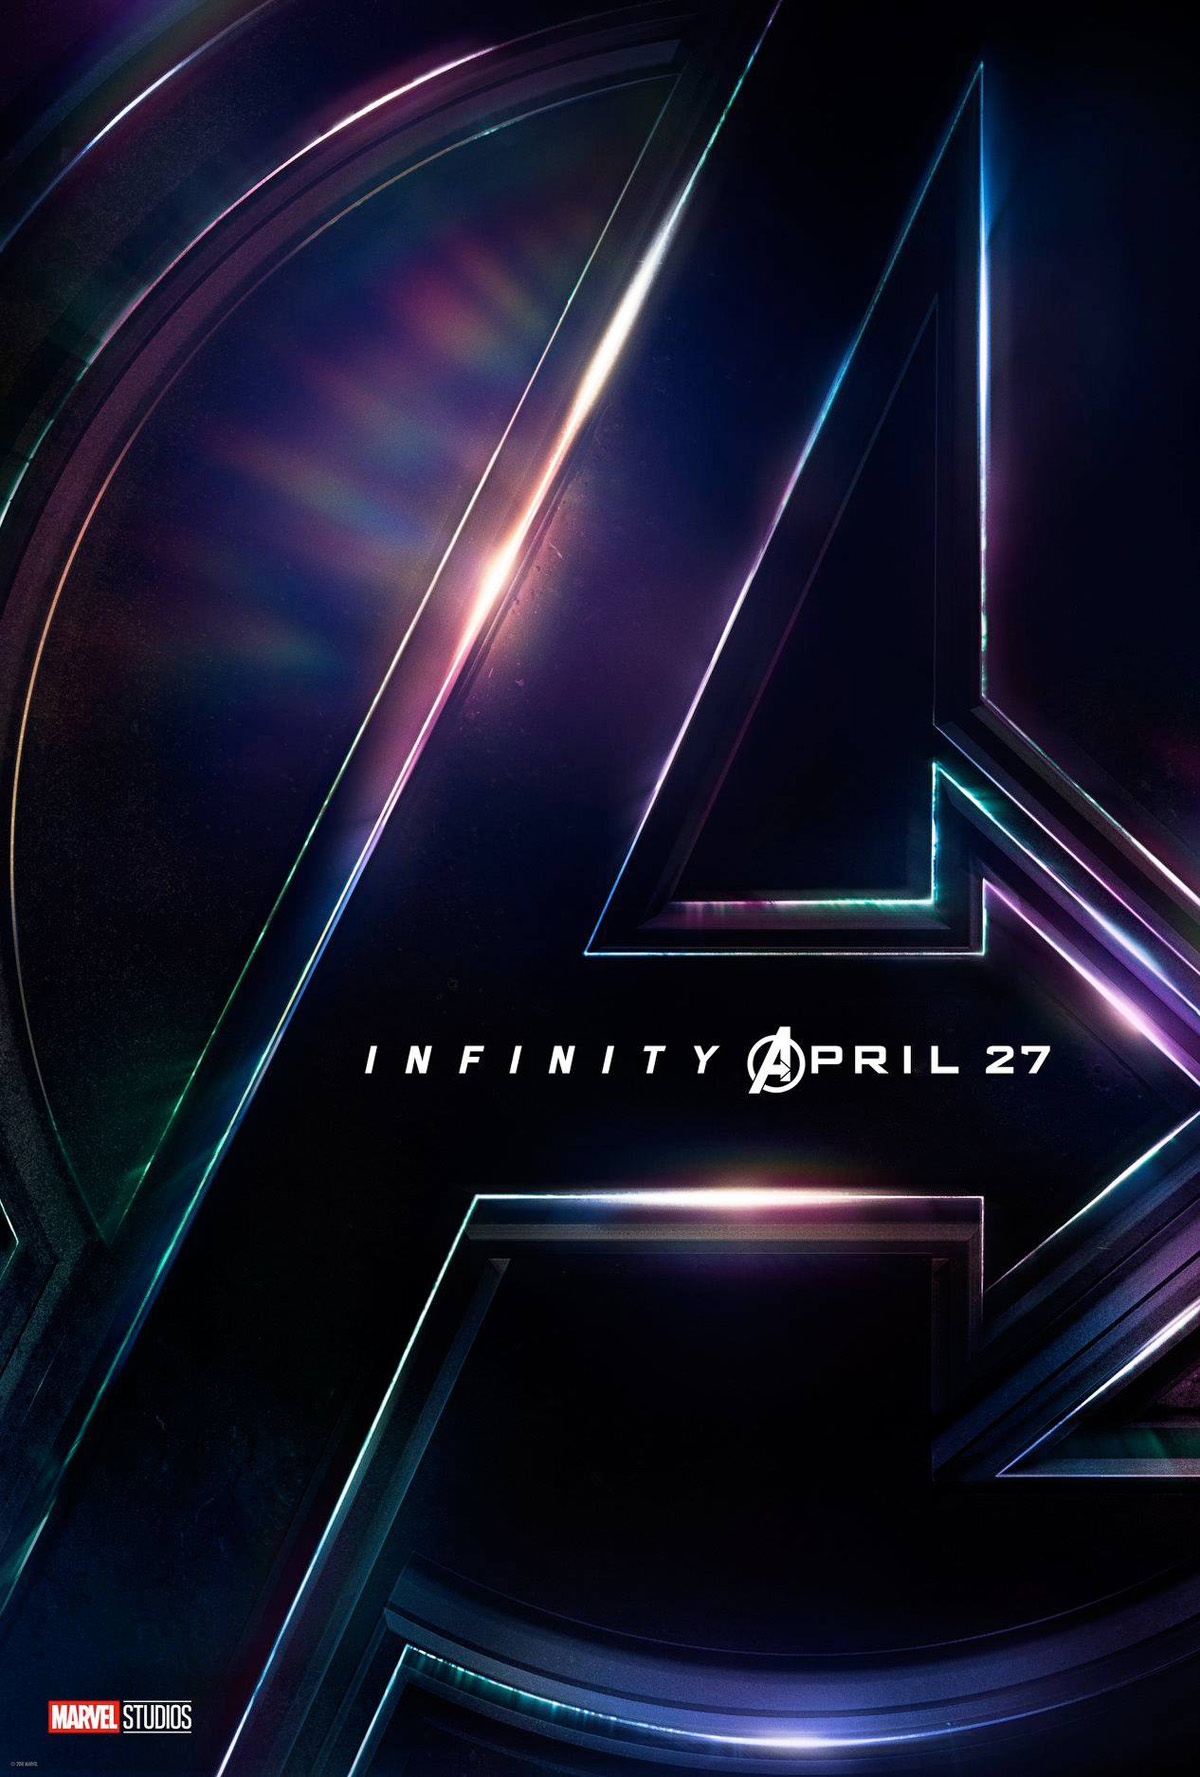 marvel moves avengers: infinity war release date up to april 27